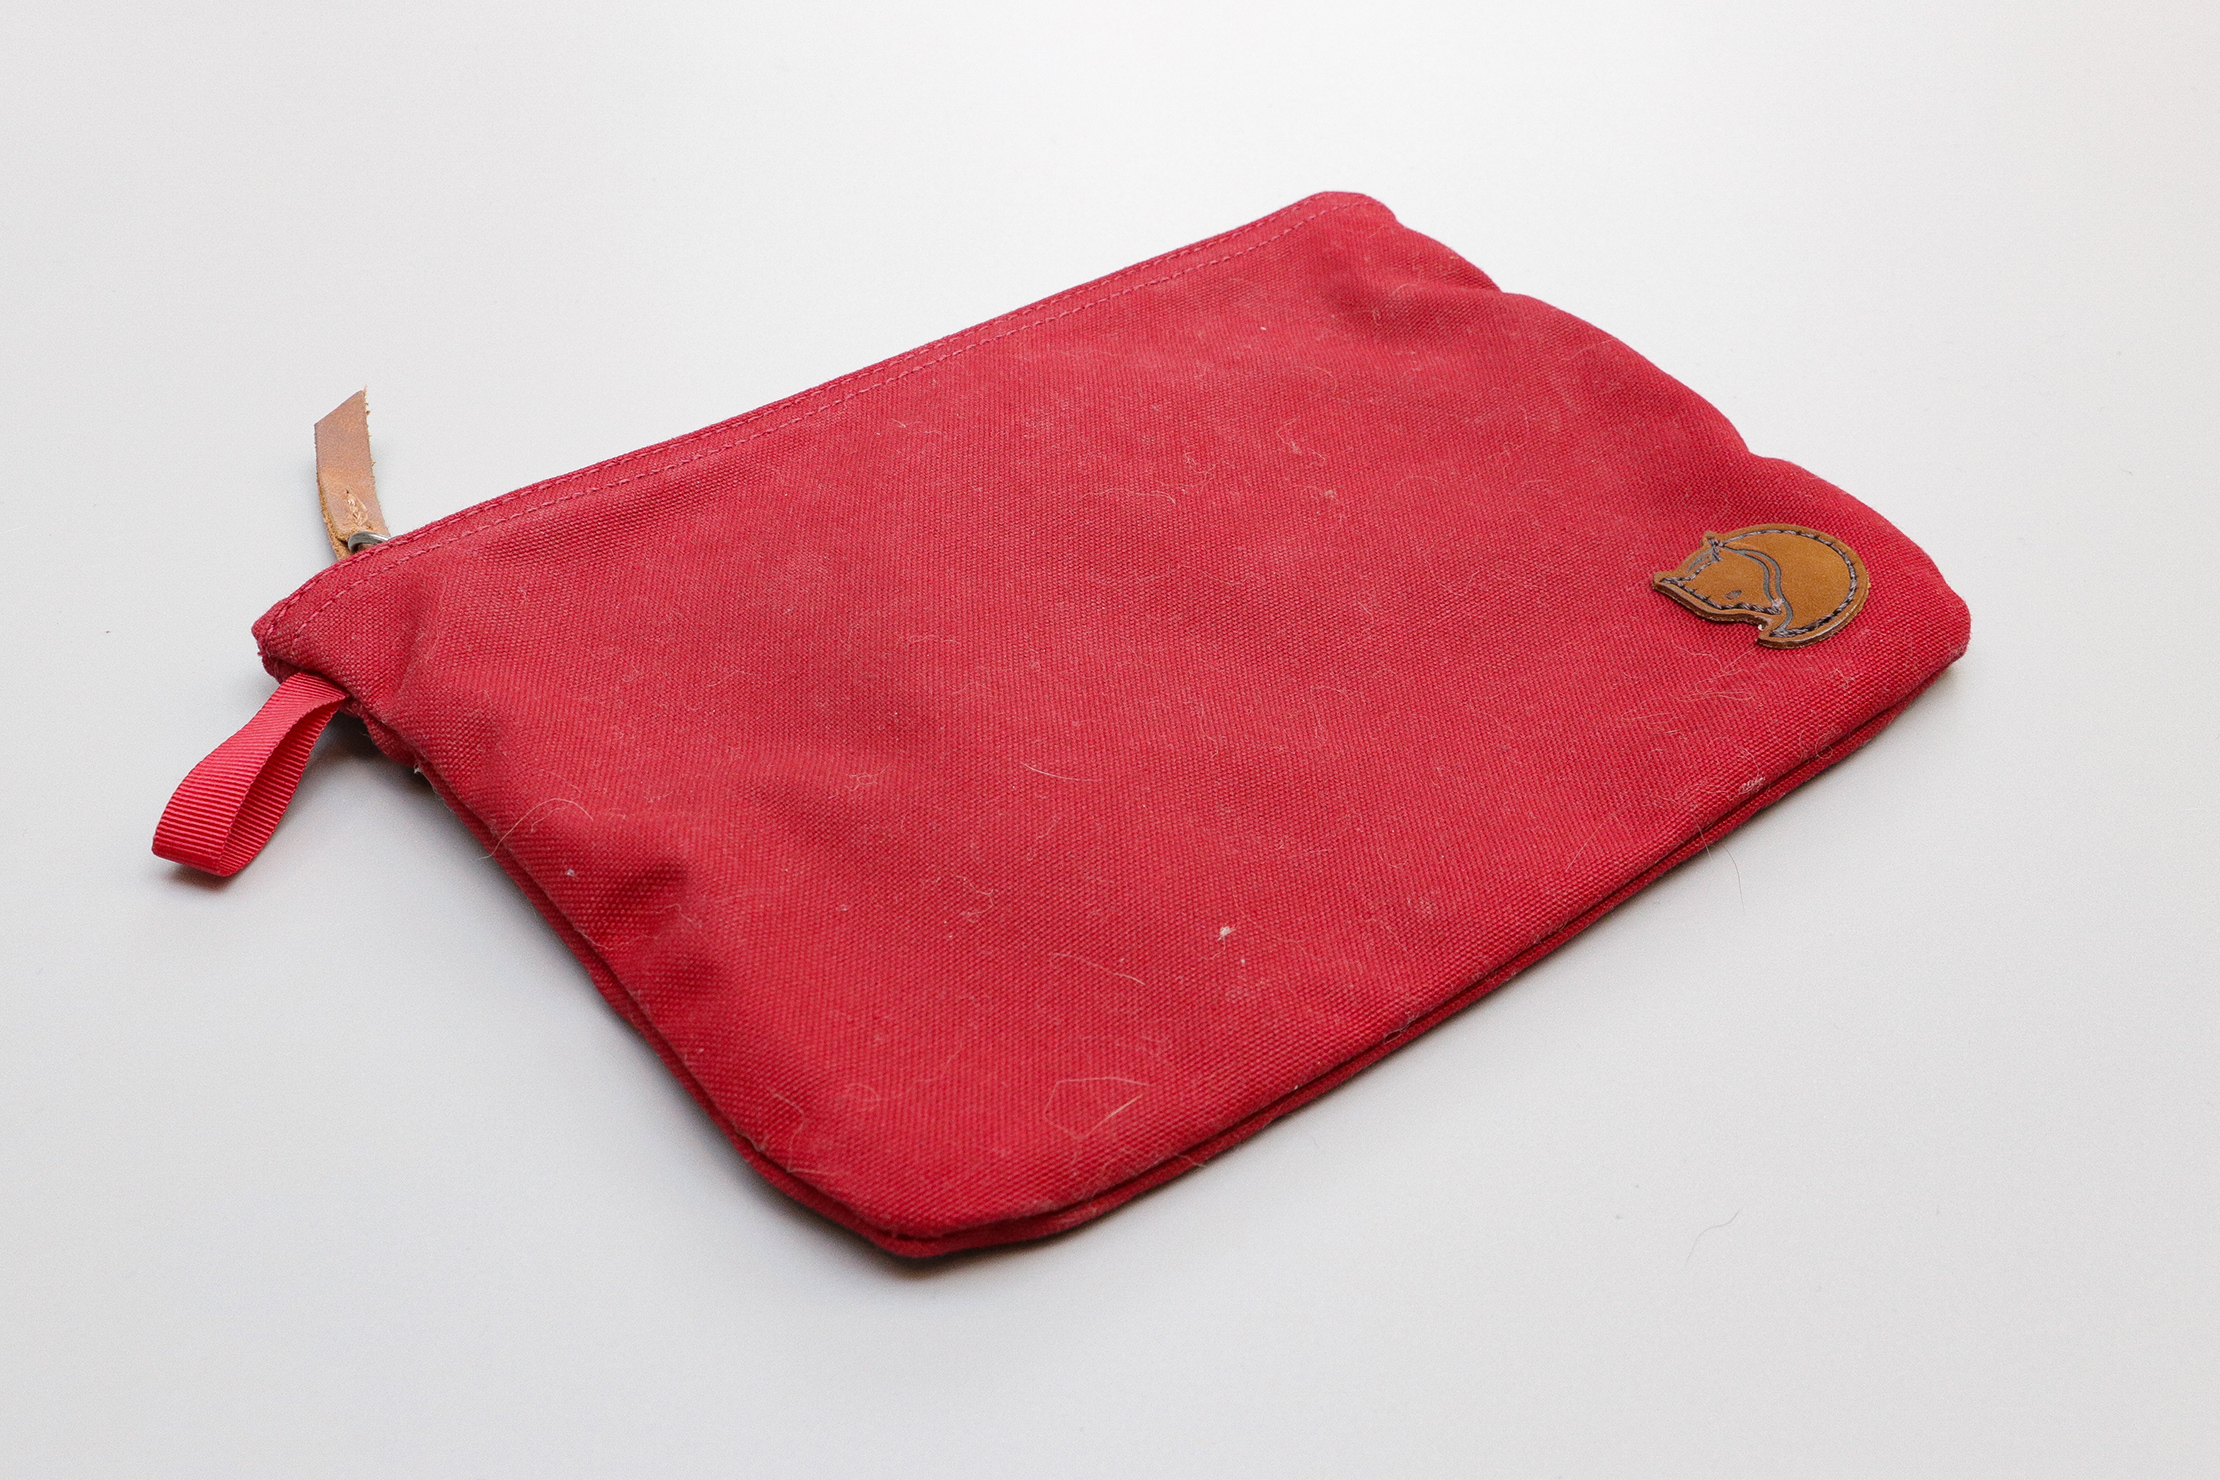 Dust On The Red Fjallraven Gear Pocket